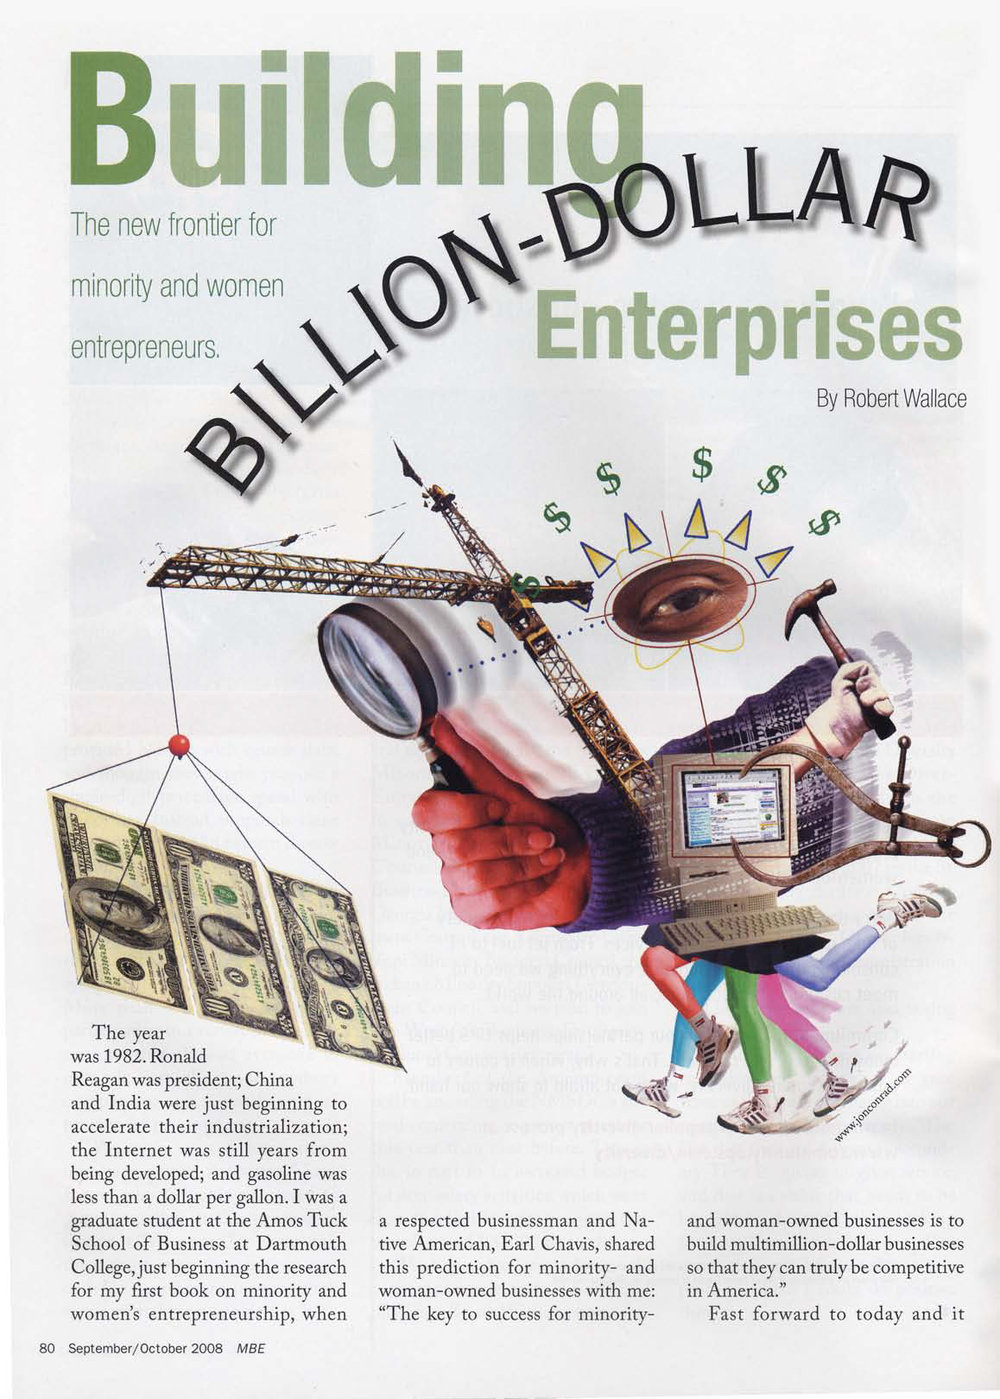 building billion dollar enterprises-1.jpg